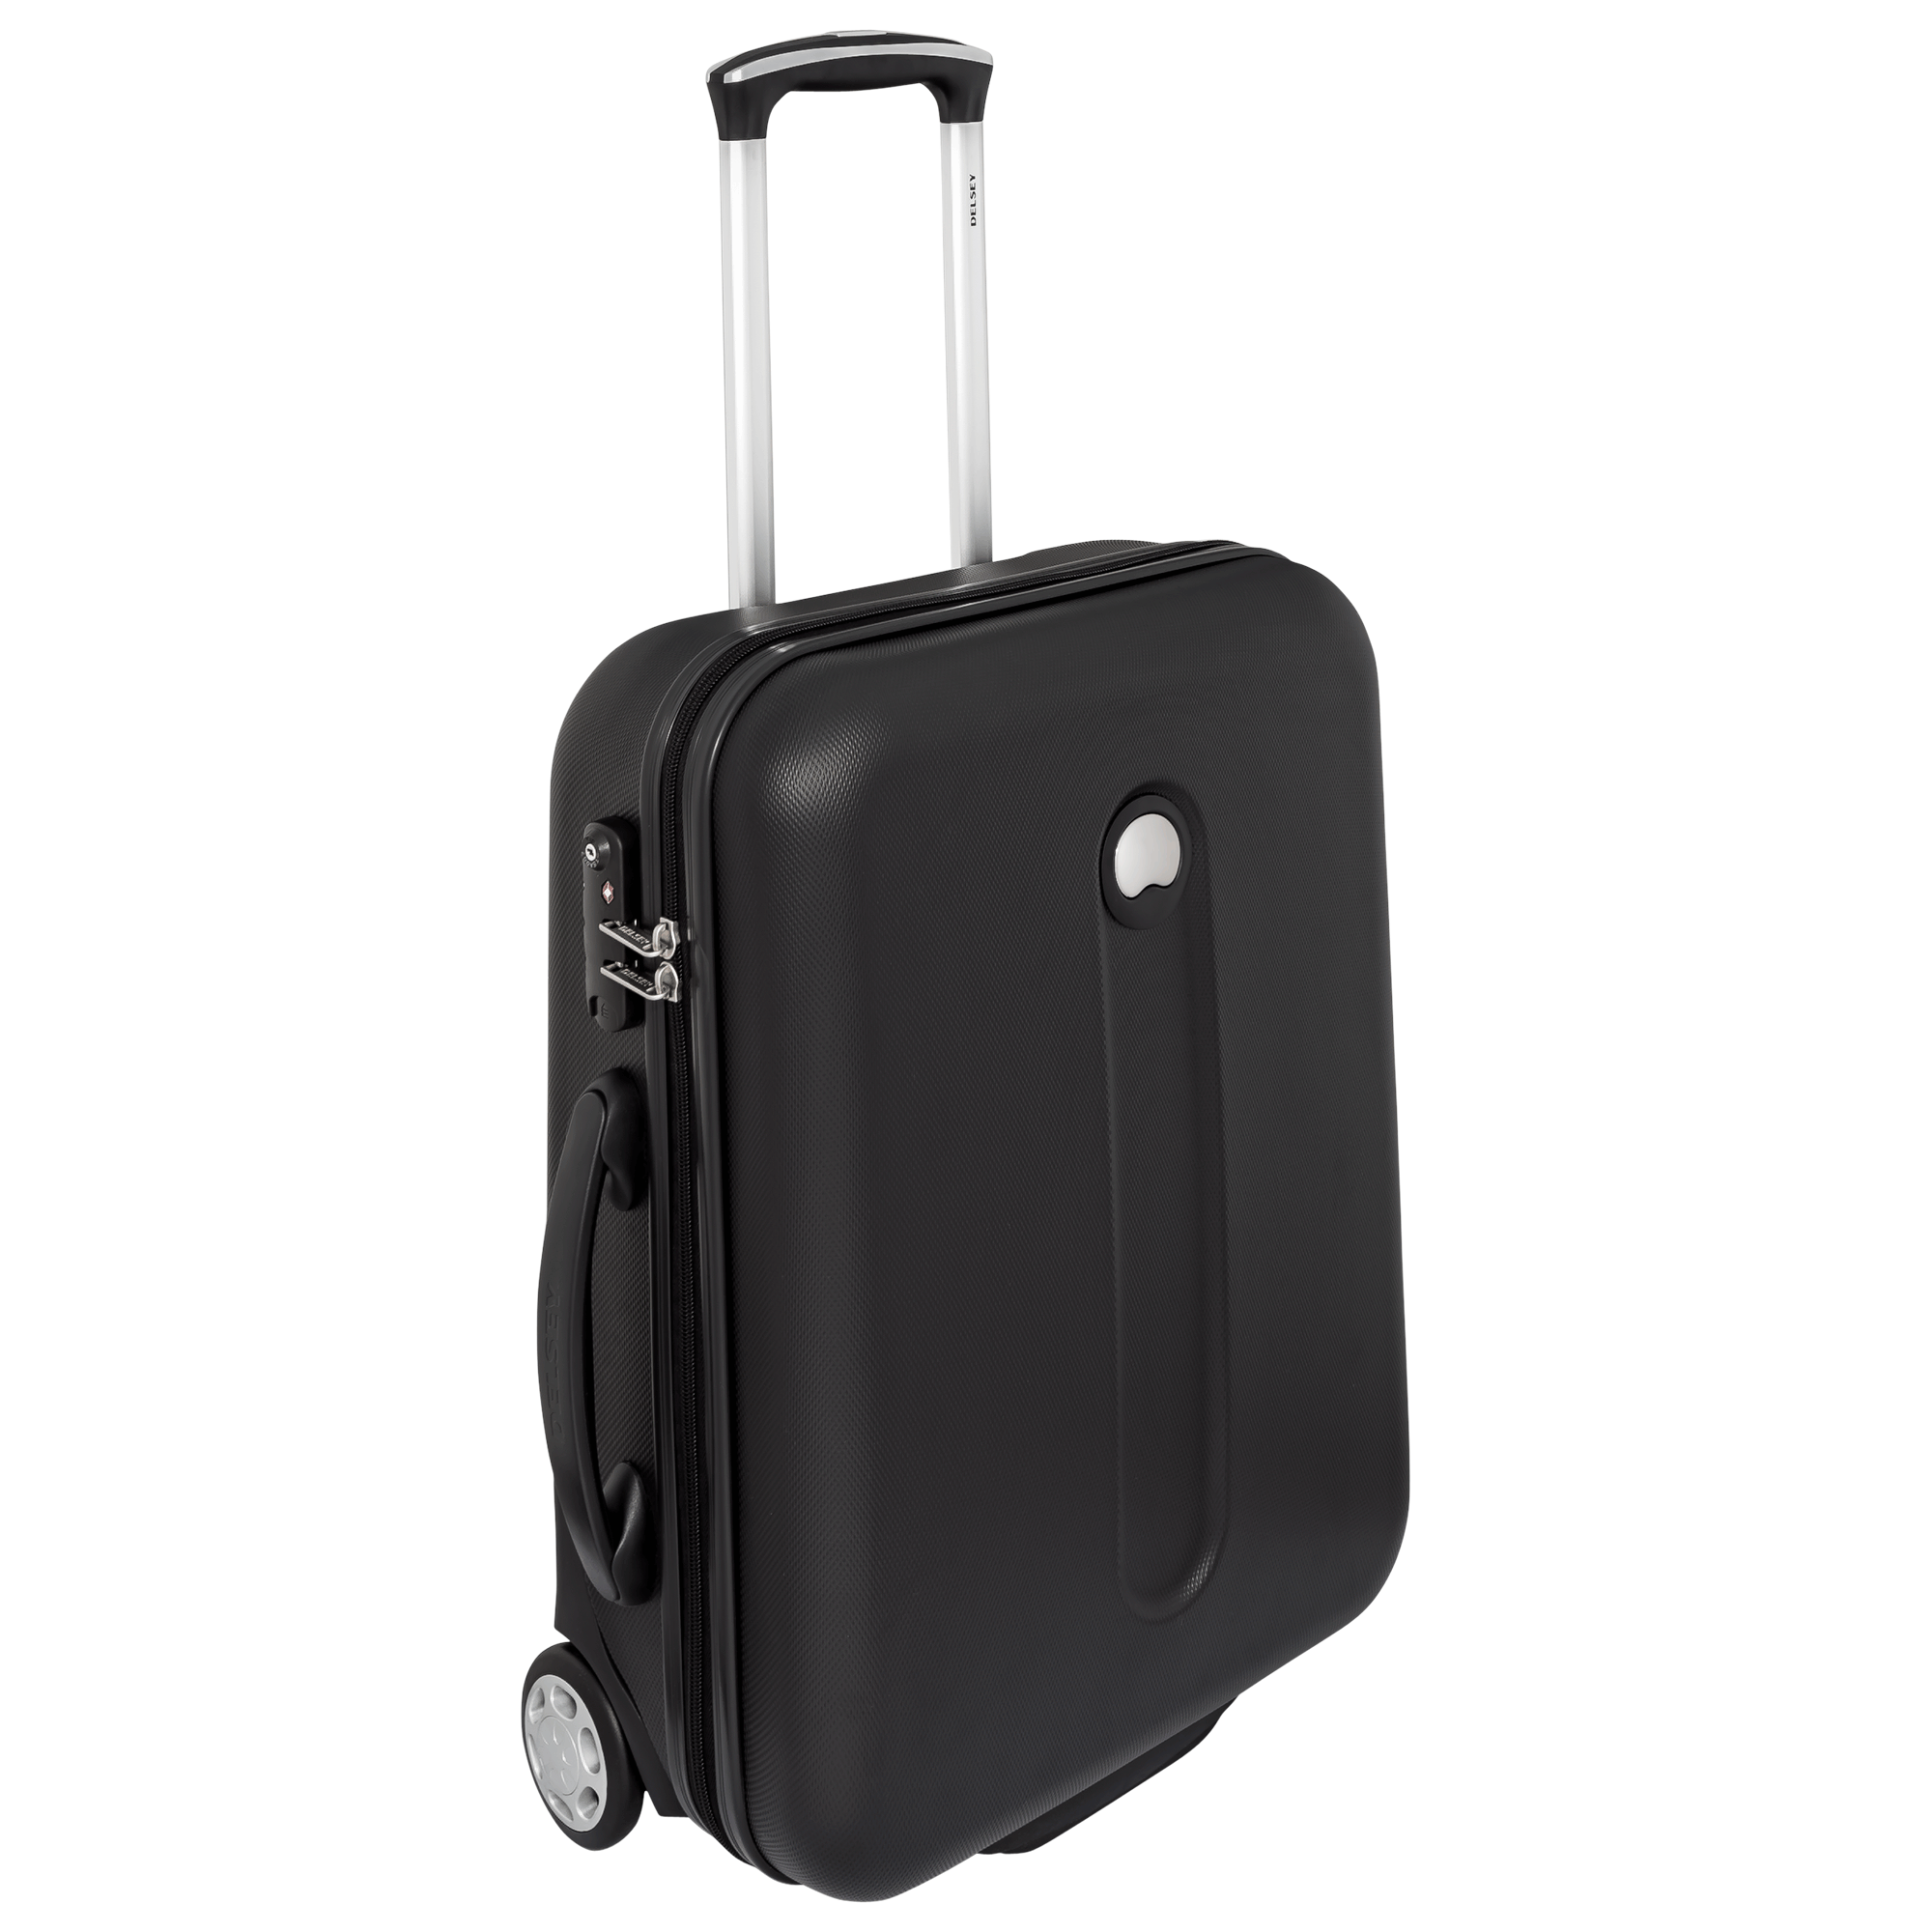 Suitcase PNG - 2552